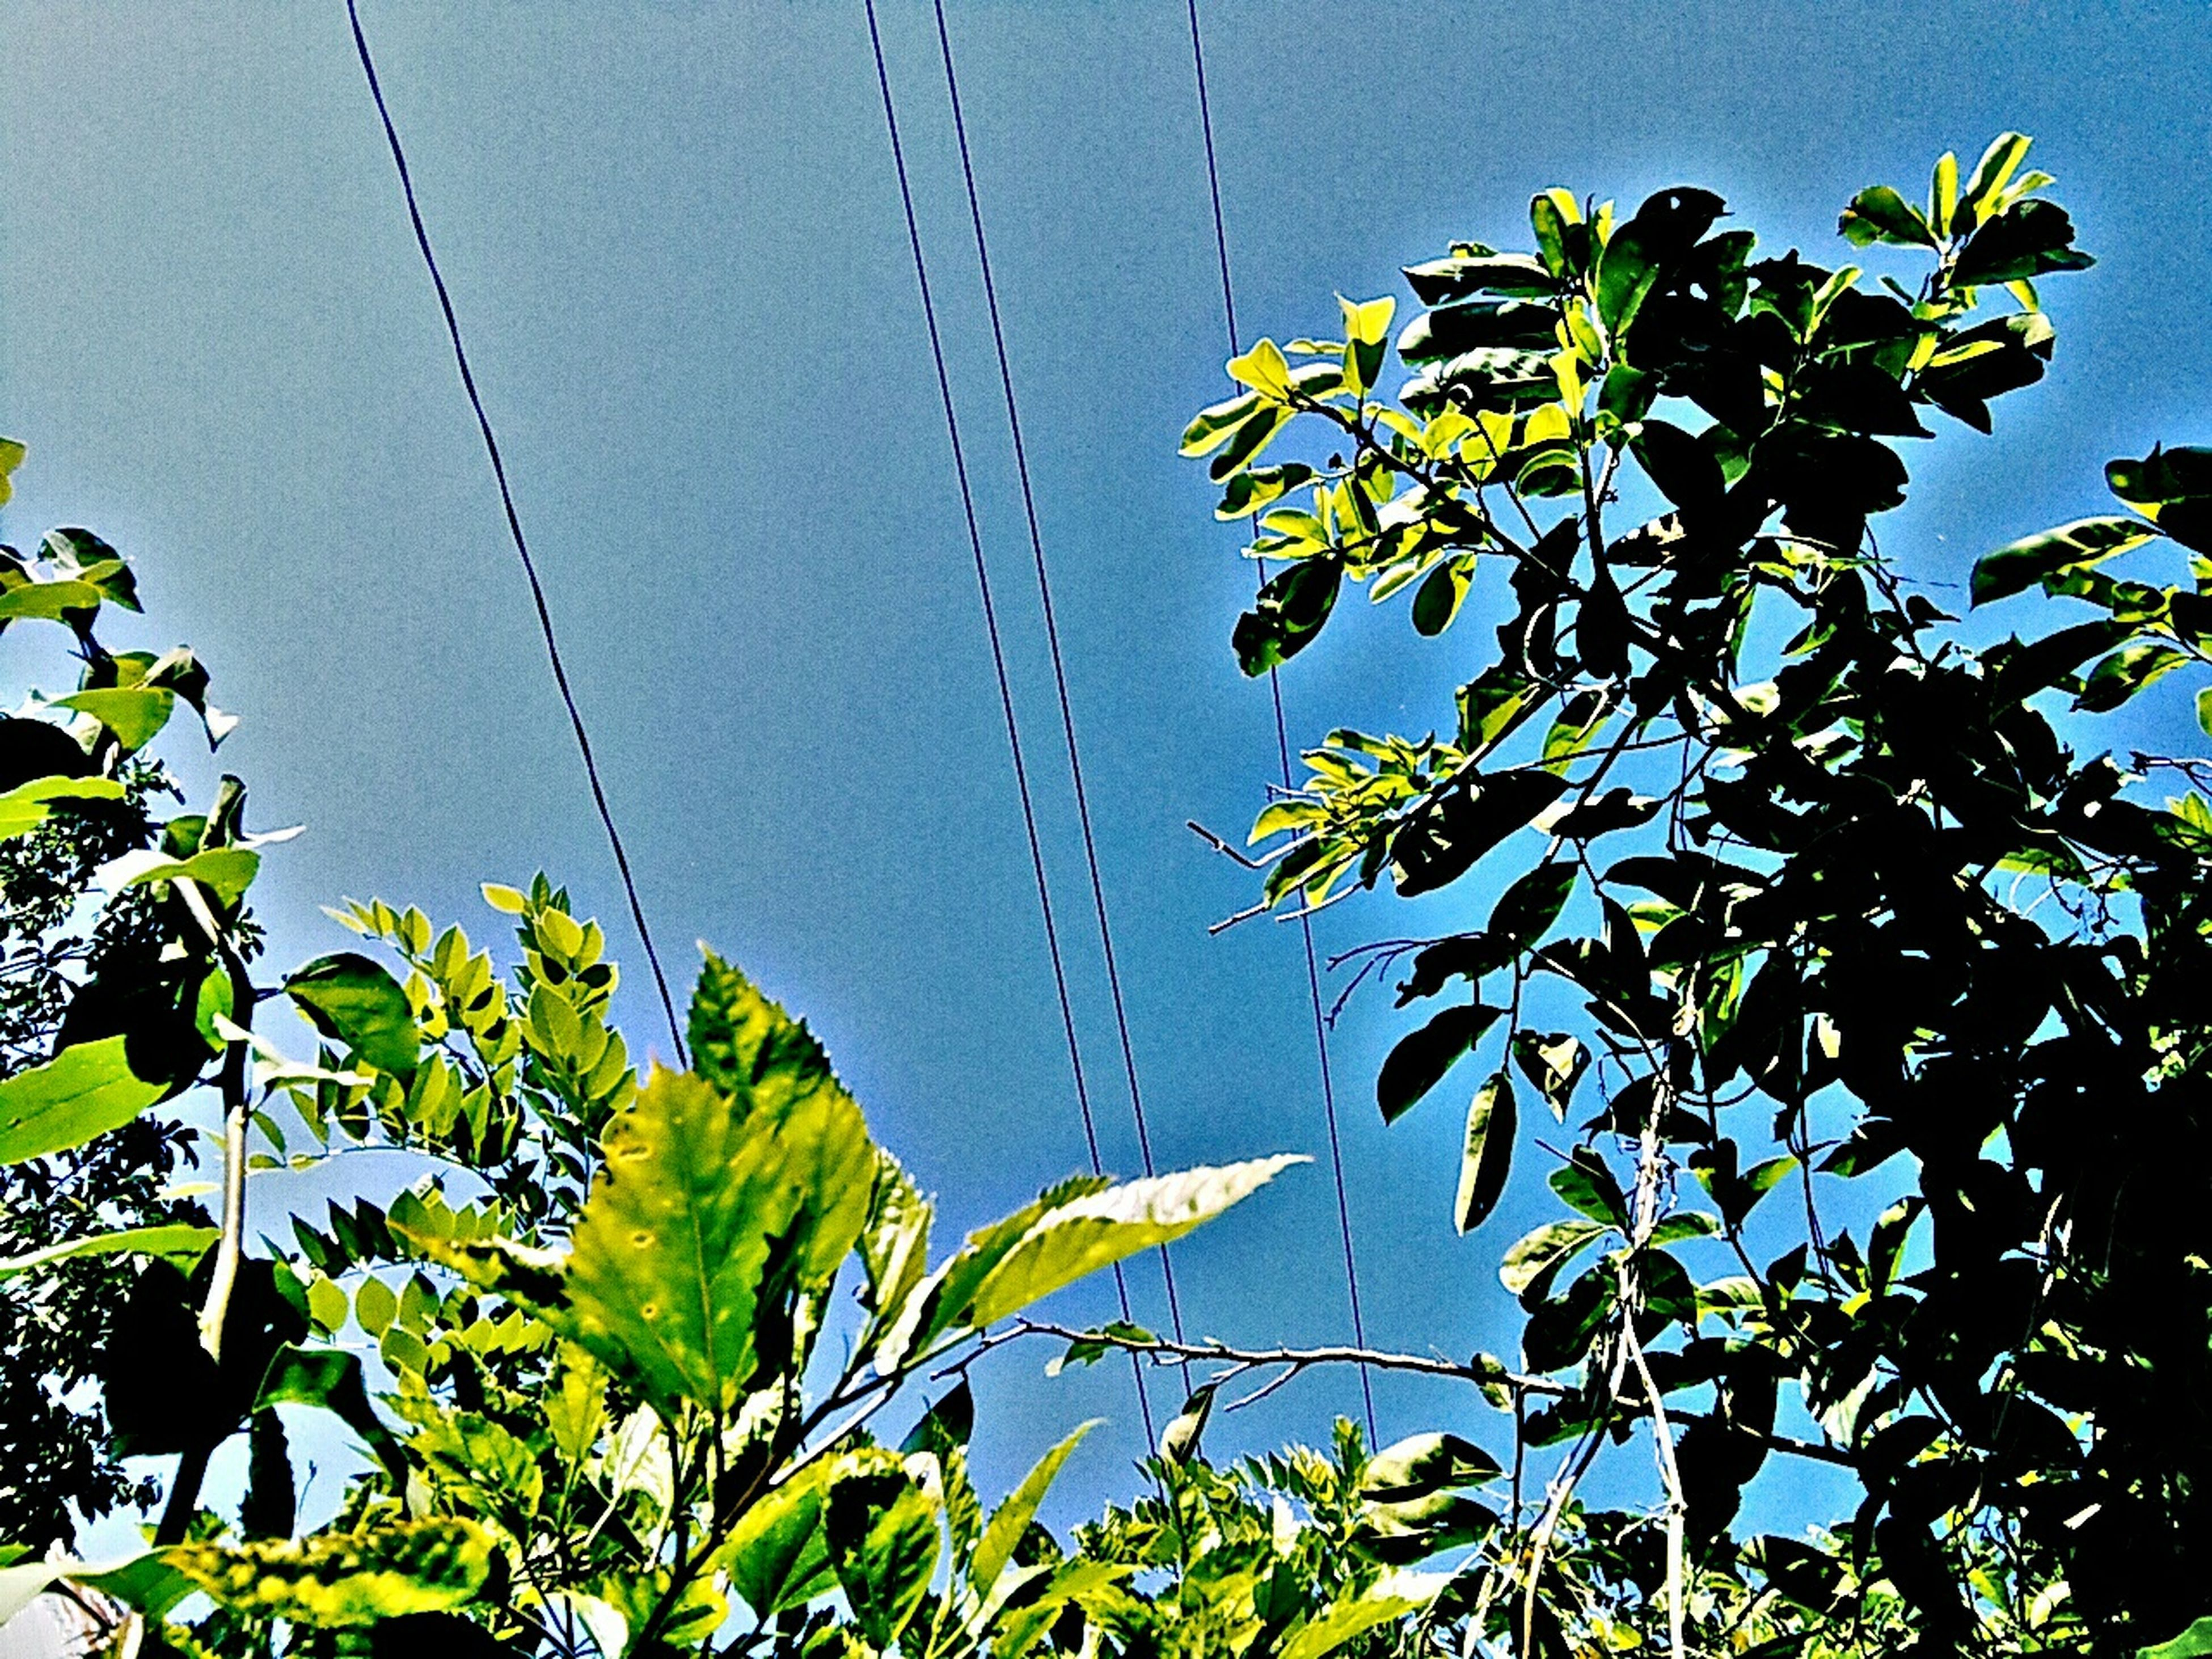 growth, low angle view, leaf, clear sky, day, nature, no people, blue, freshness, tree, outdoors, sky, fragility, flower, beauty in nature